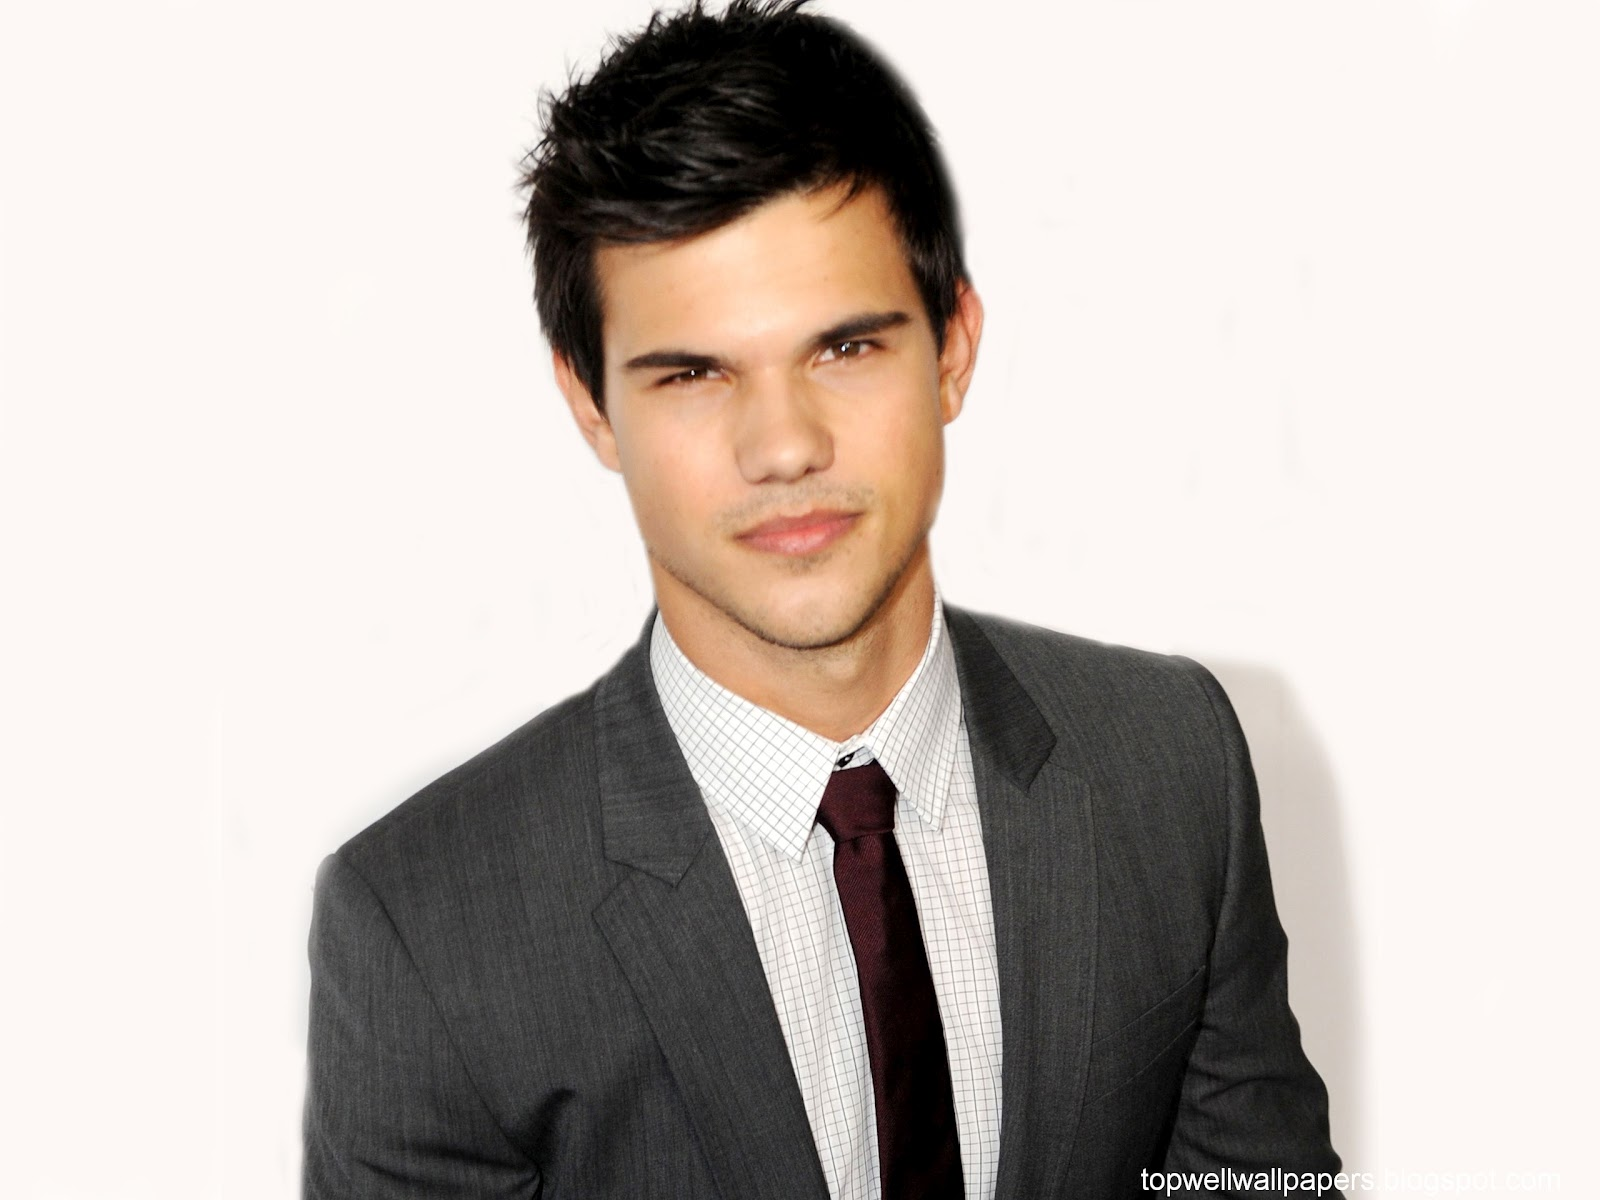 http://2.bp.blogspot.com/-6akQQpIeqQg/UCed3JjpWHI/AAAAAAAAAy0/lg-Qa76QG9I/s1600/Taylor_Lautner_grey-suit-handsome-hot-young-celeb-actor-twilight-hd-desktop-wallpaper-screensaver-background.jpg